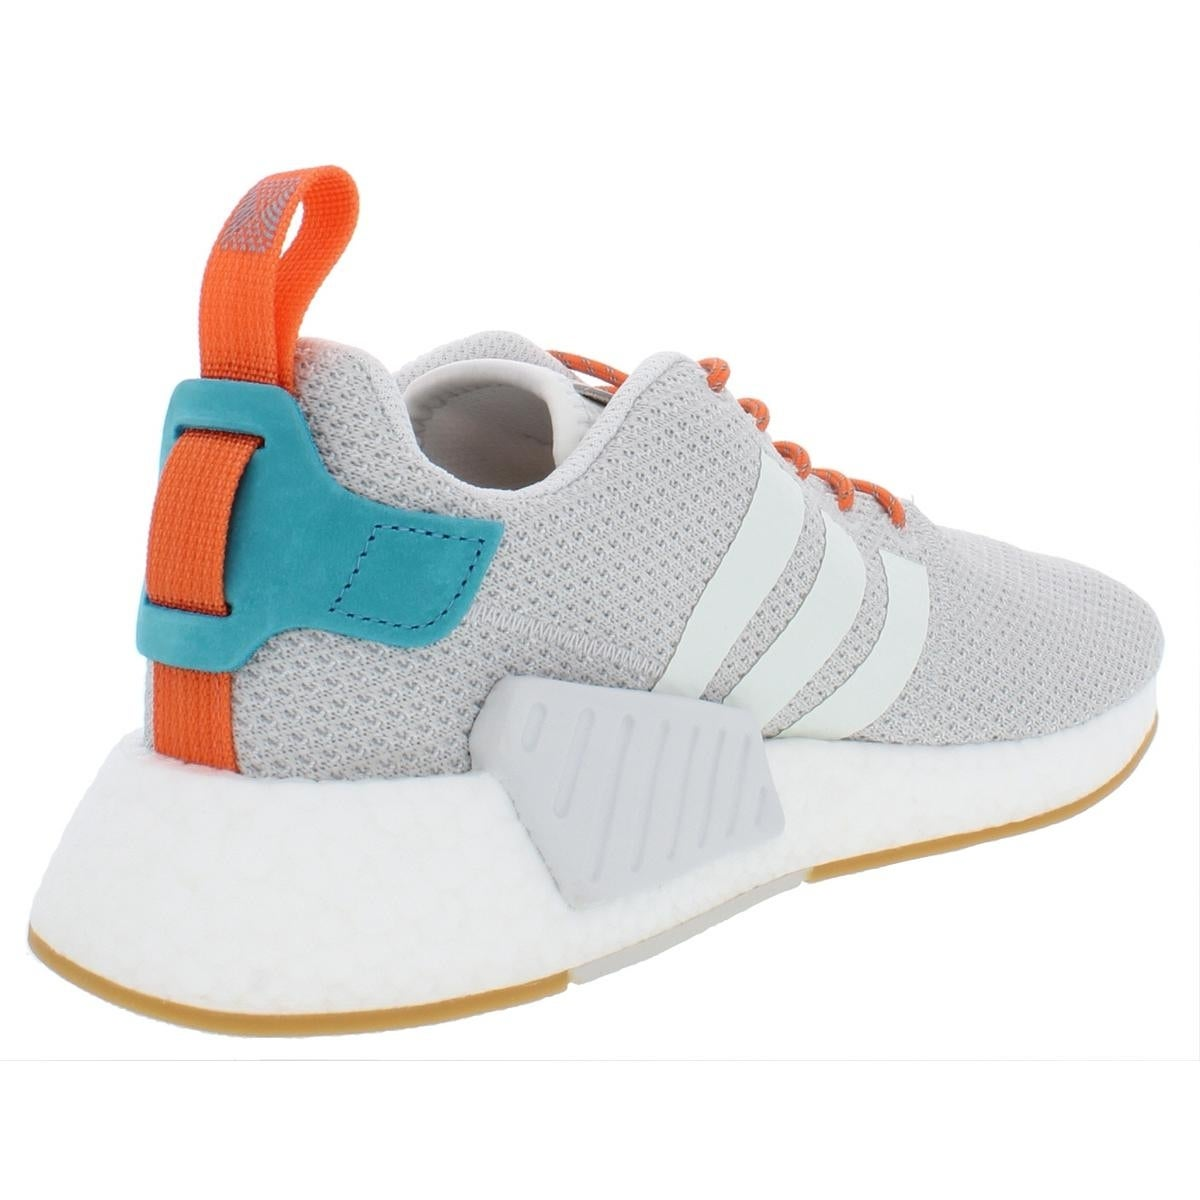 new arrival 6a880 c9fc4 adidas Originals Mens NMD R2 Summer Athletic Shoes Knit Running